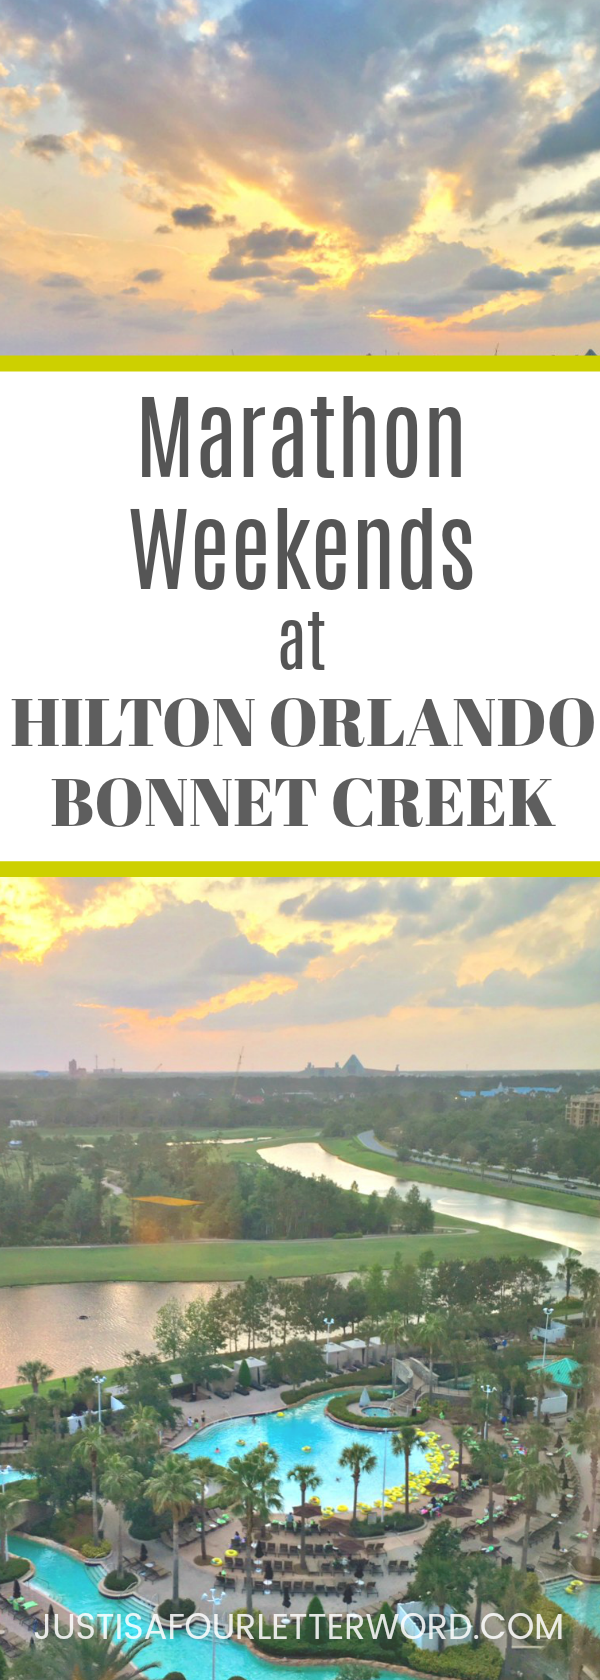 Hilton Orlando Bonnet Creek Marathon Weekends